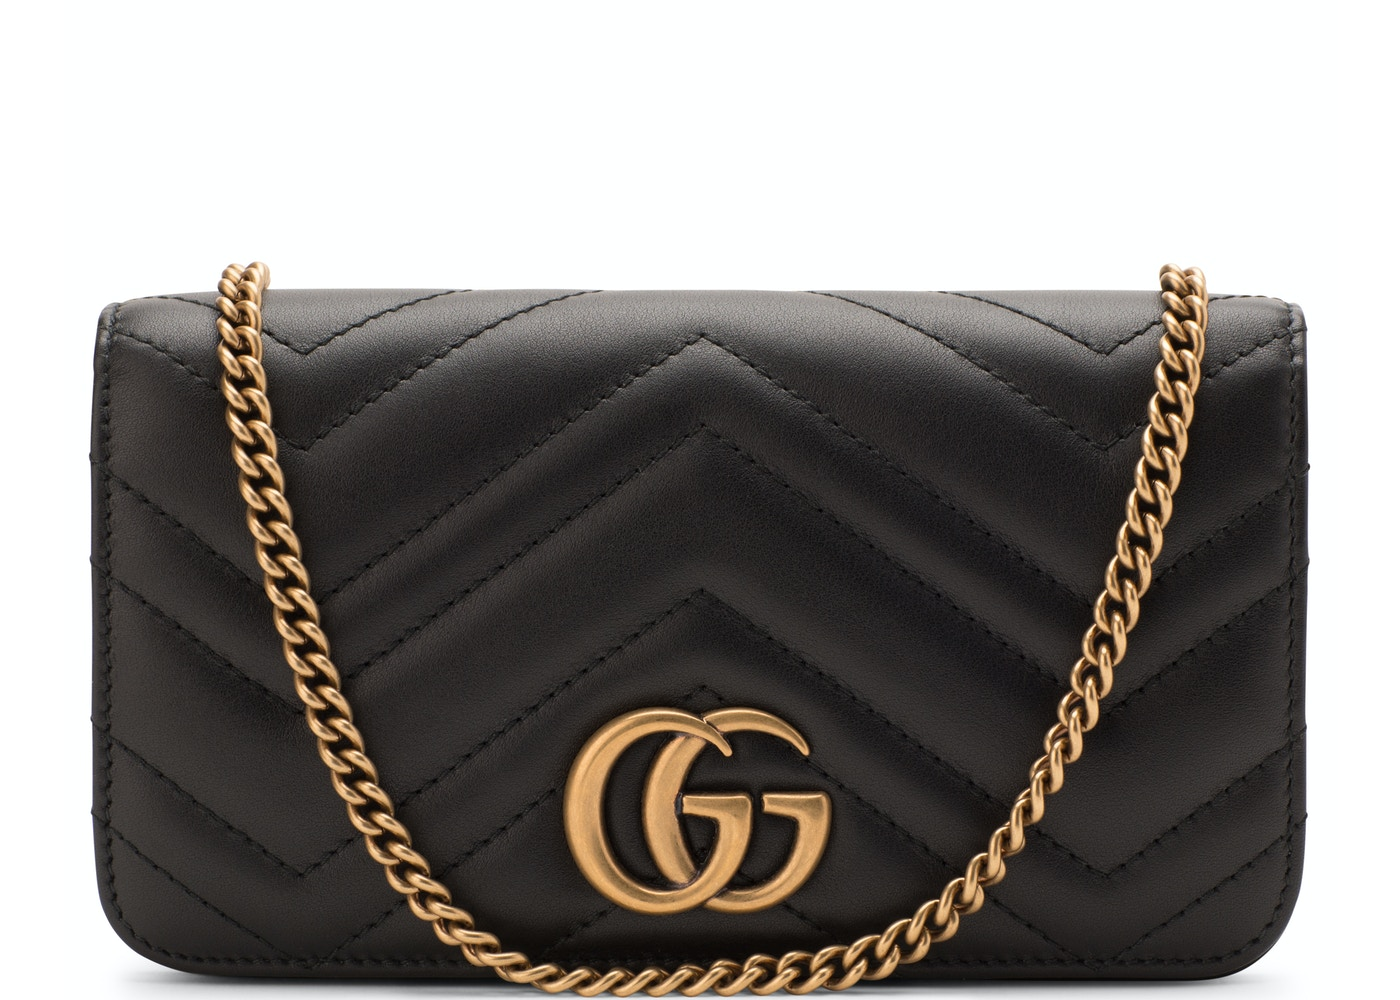 fee55d4fe963 Gg Marmont Wallet On Chain Black   Stanford Center for Opportunity ...